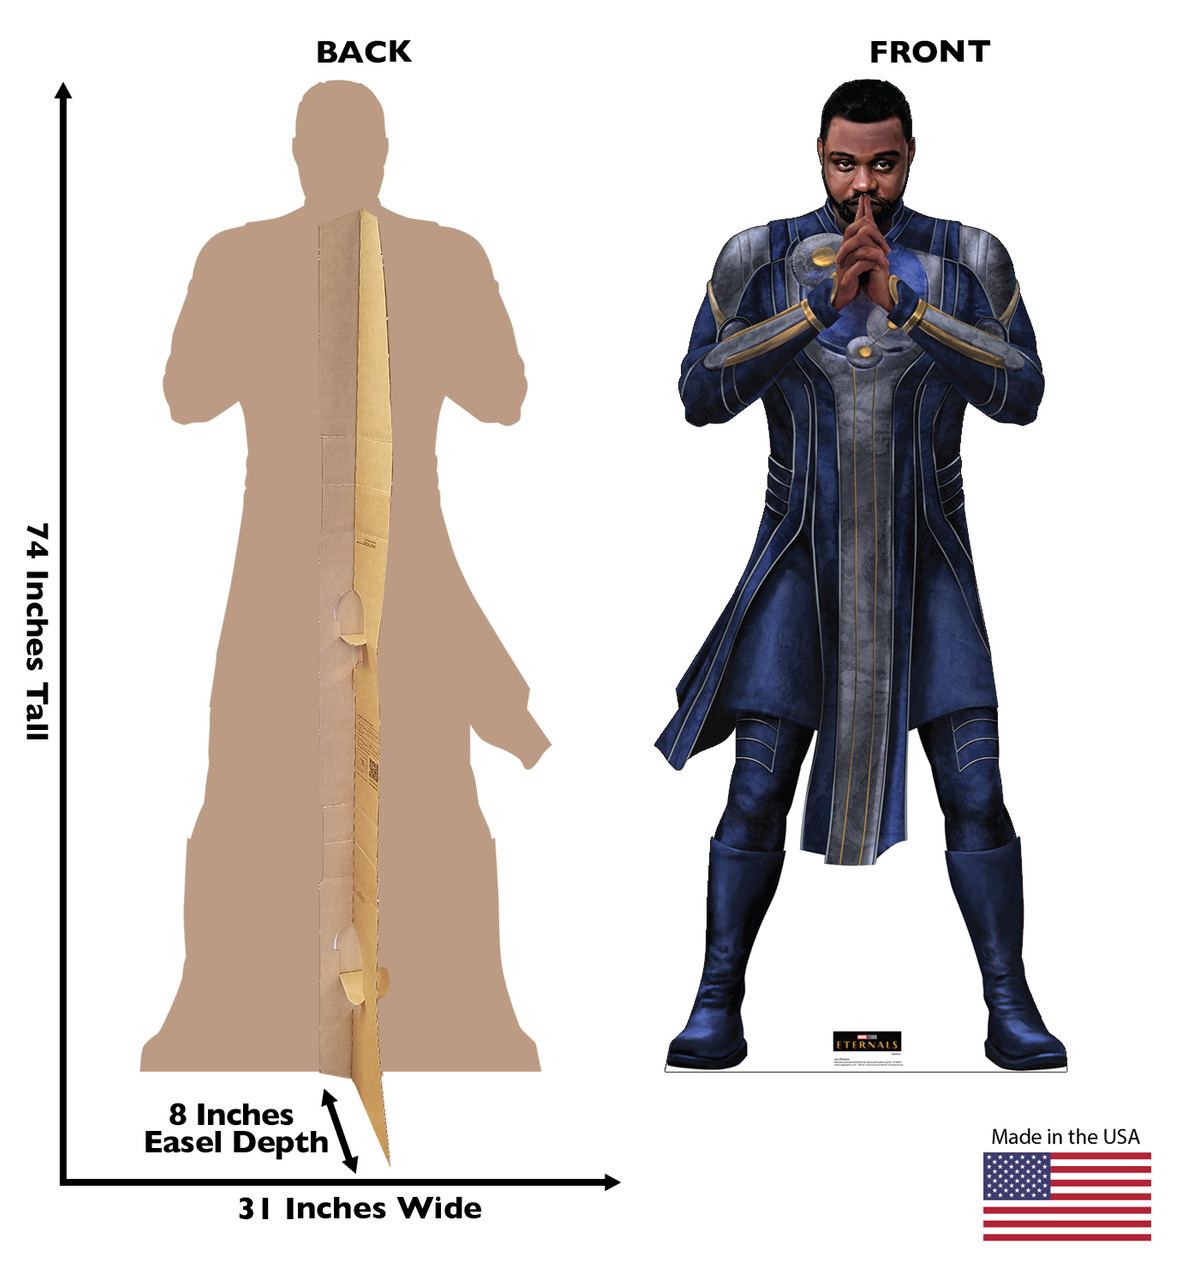 Life-size cardboard standee of Phastos from the Marvel movie The Eternals with back and front dimensions.